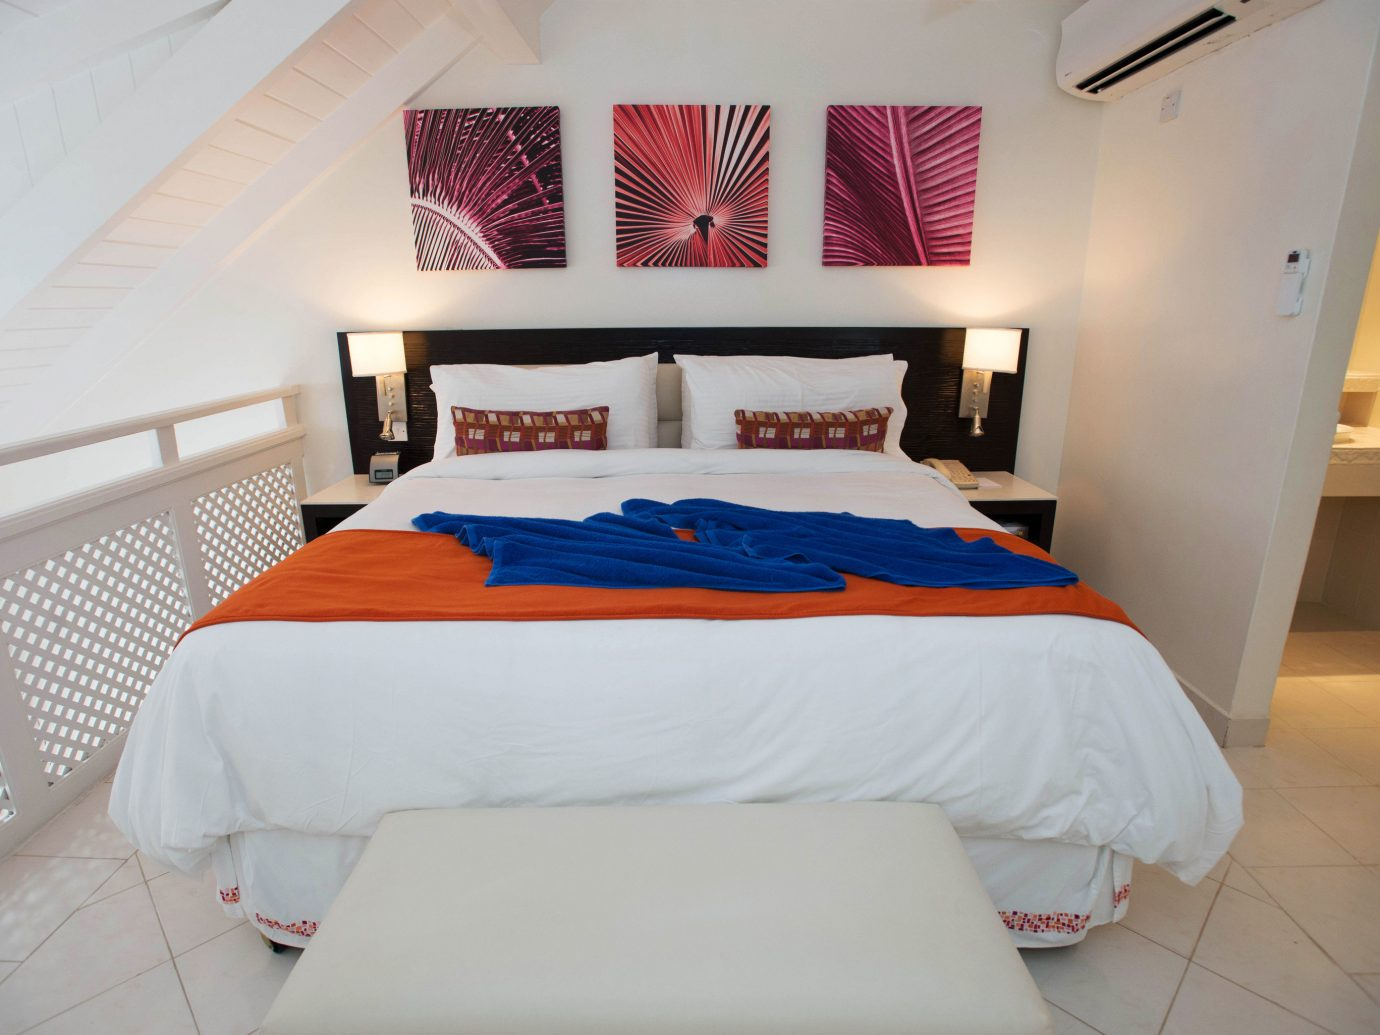 All-Inclusive Resorts Hotels wall indoor bed floor room property Bedroom white furniture cottage bed sheet Suite interior design apartment